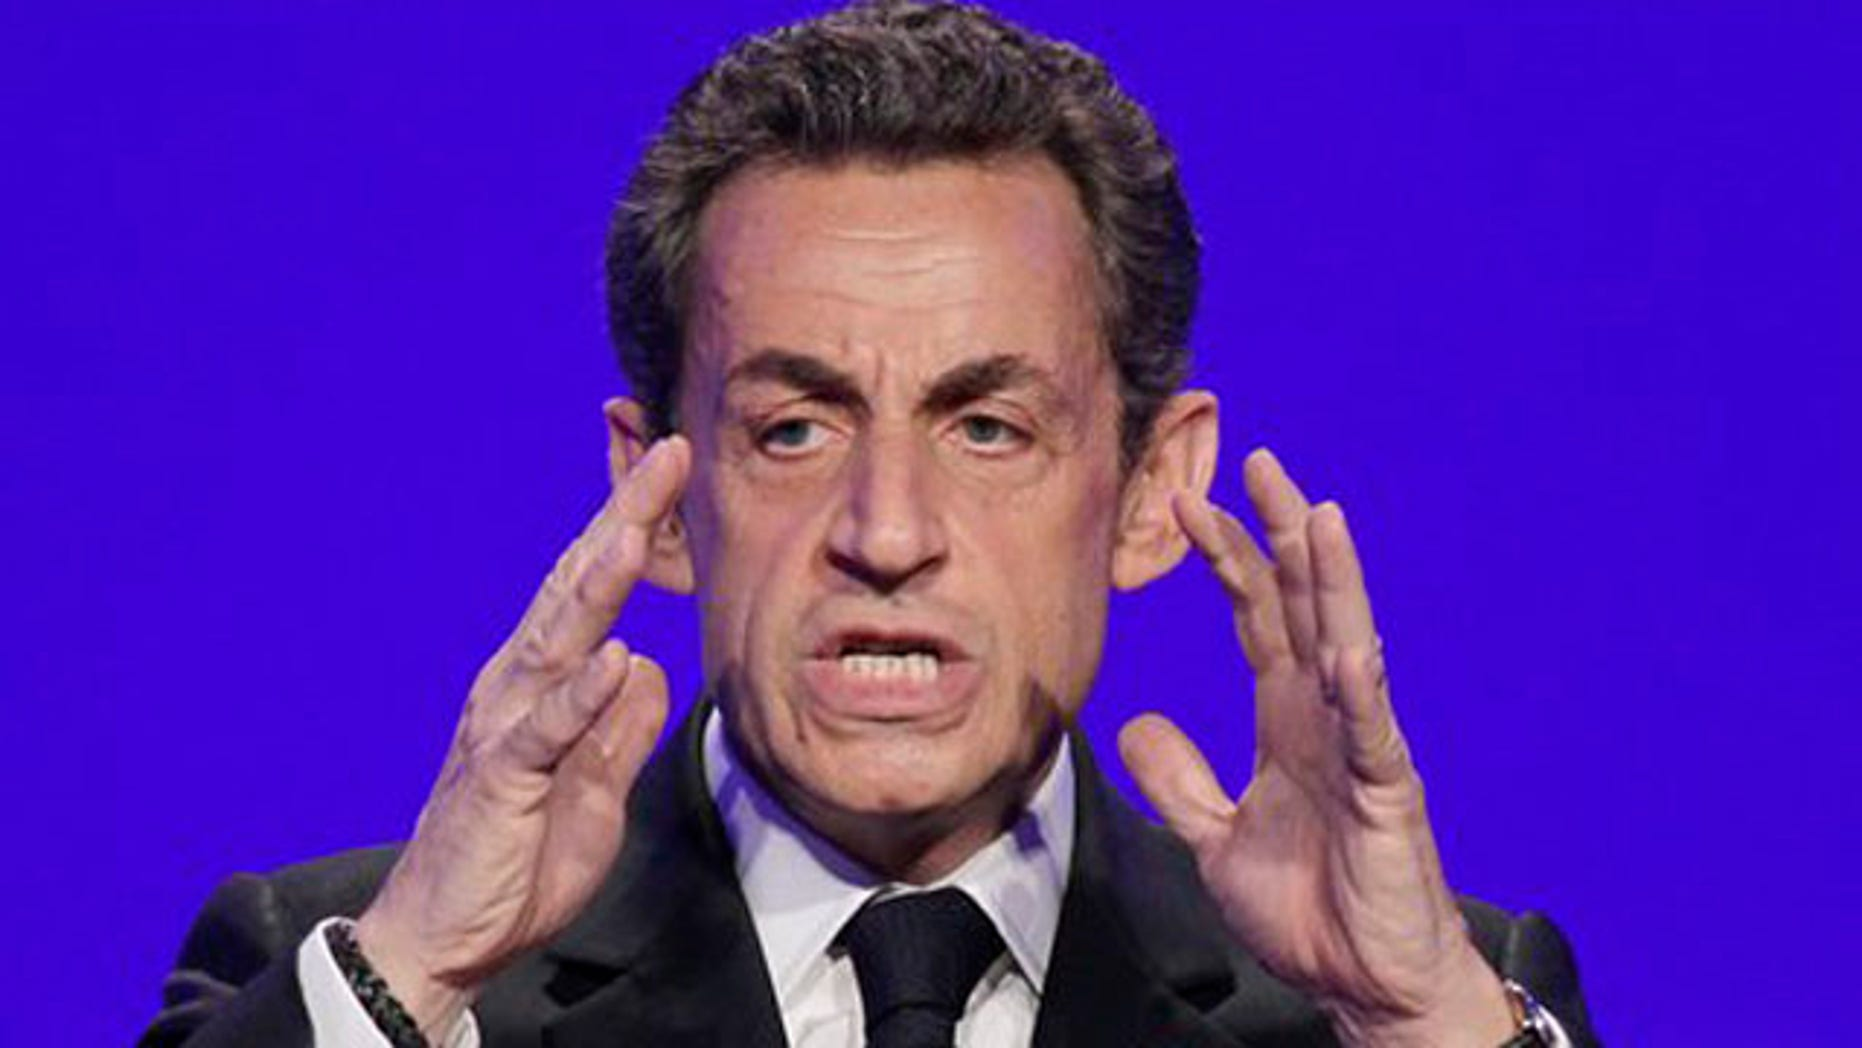 April 5, 2012: France's President and candidate for re-election in 2012, Nicolas Sarkozy, gestures as he speaks to reporters during a press conference as part of his presidential campaign in Paris.